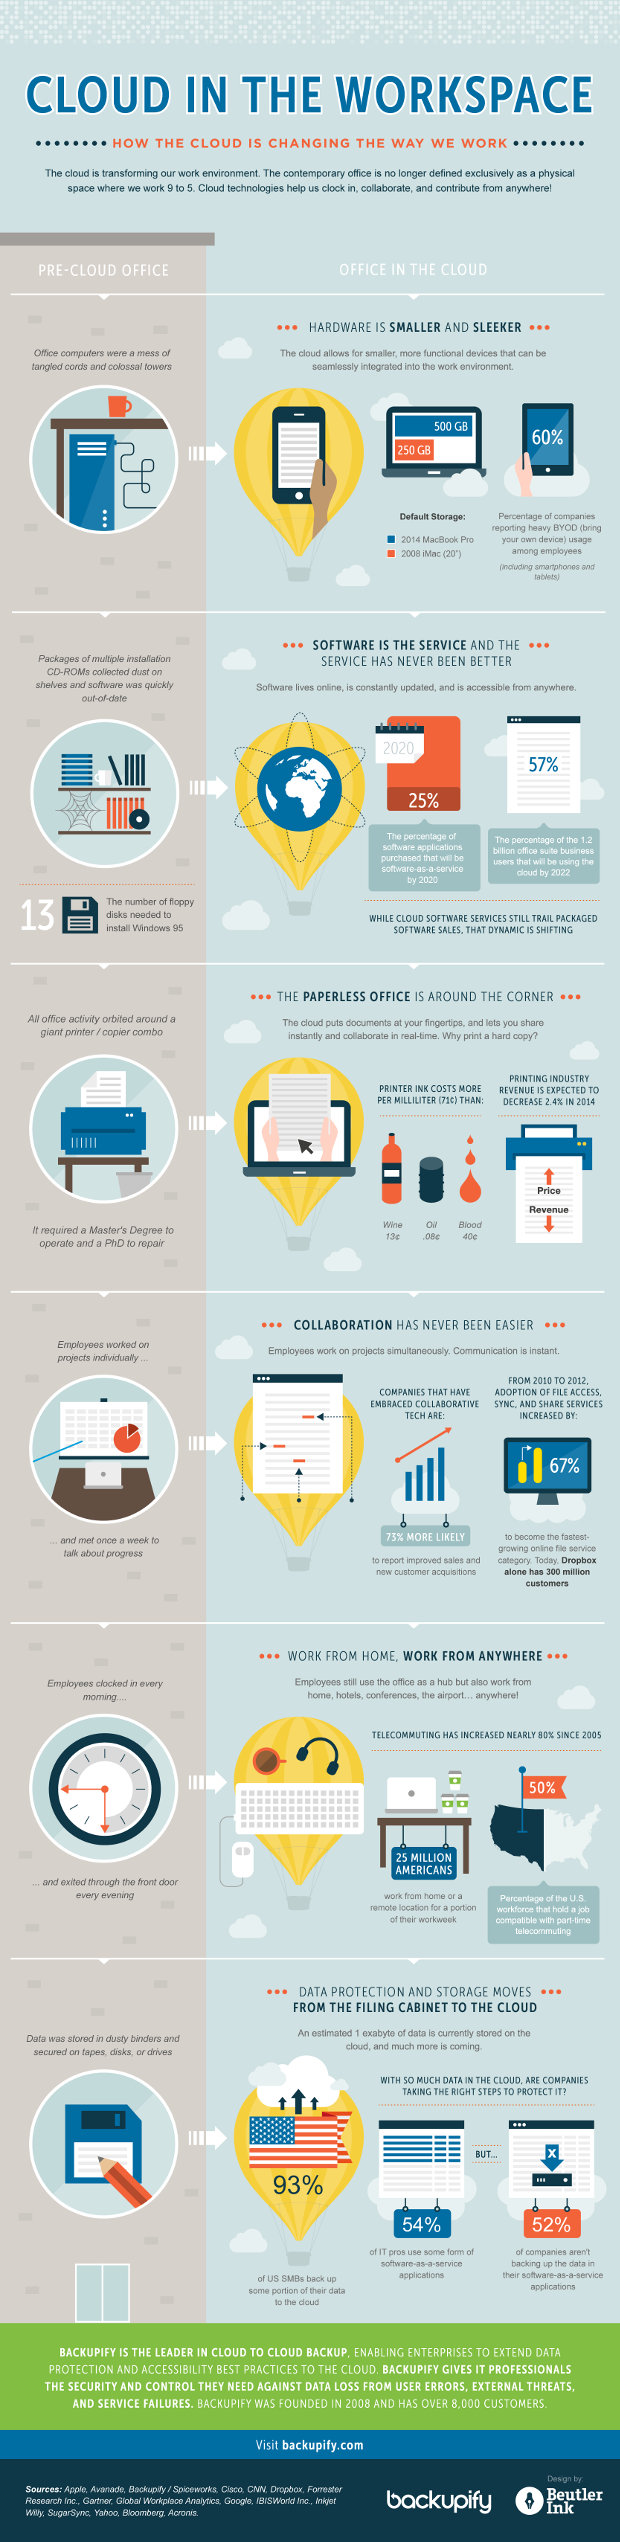 Cloud in the workplace - infographic by Backupify